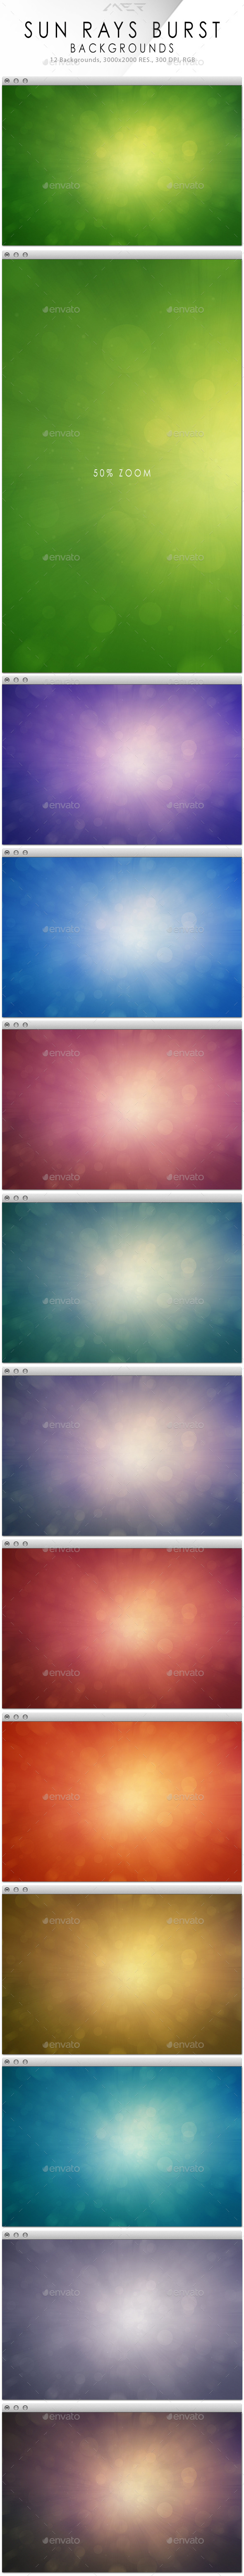 Sun Rays Burst Backgrounds - Abstract Backgrounds